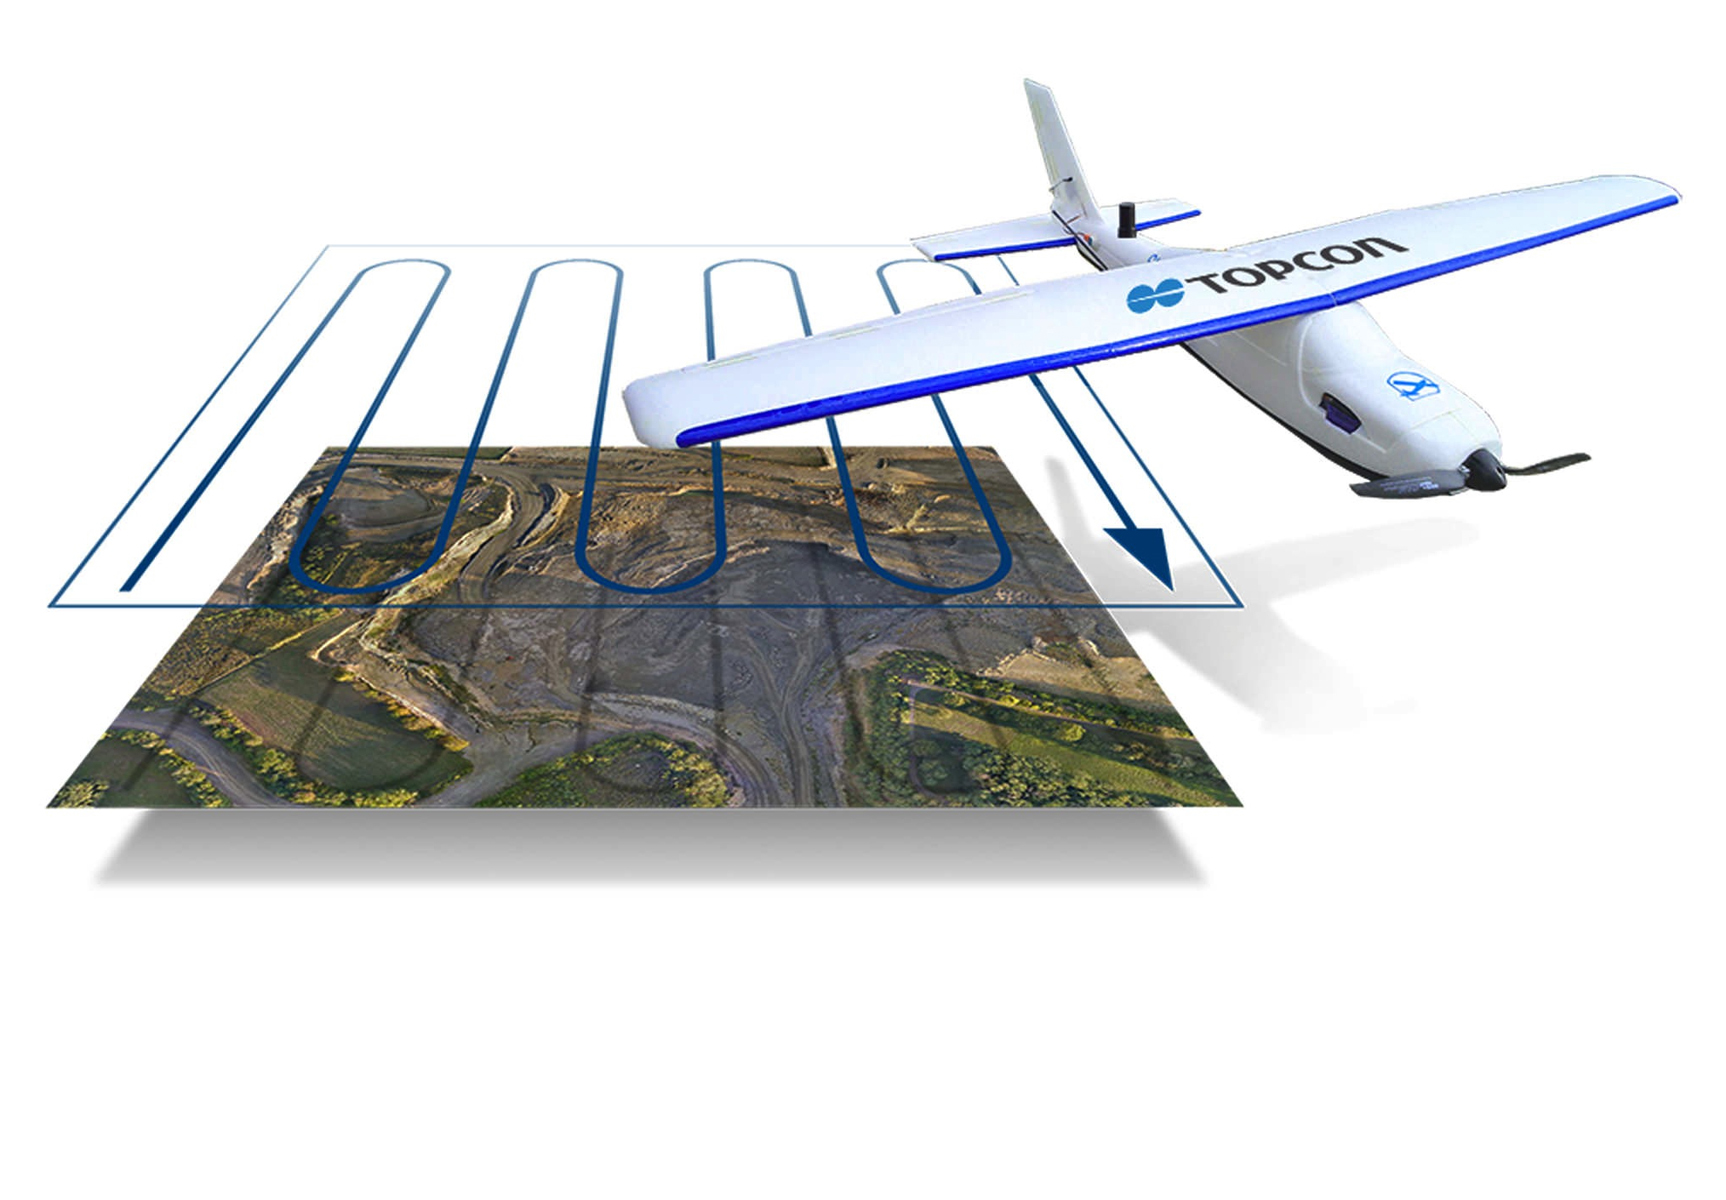 Topcon Announces Exemption To Operate Unmanned Aerial